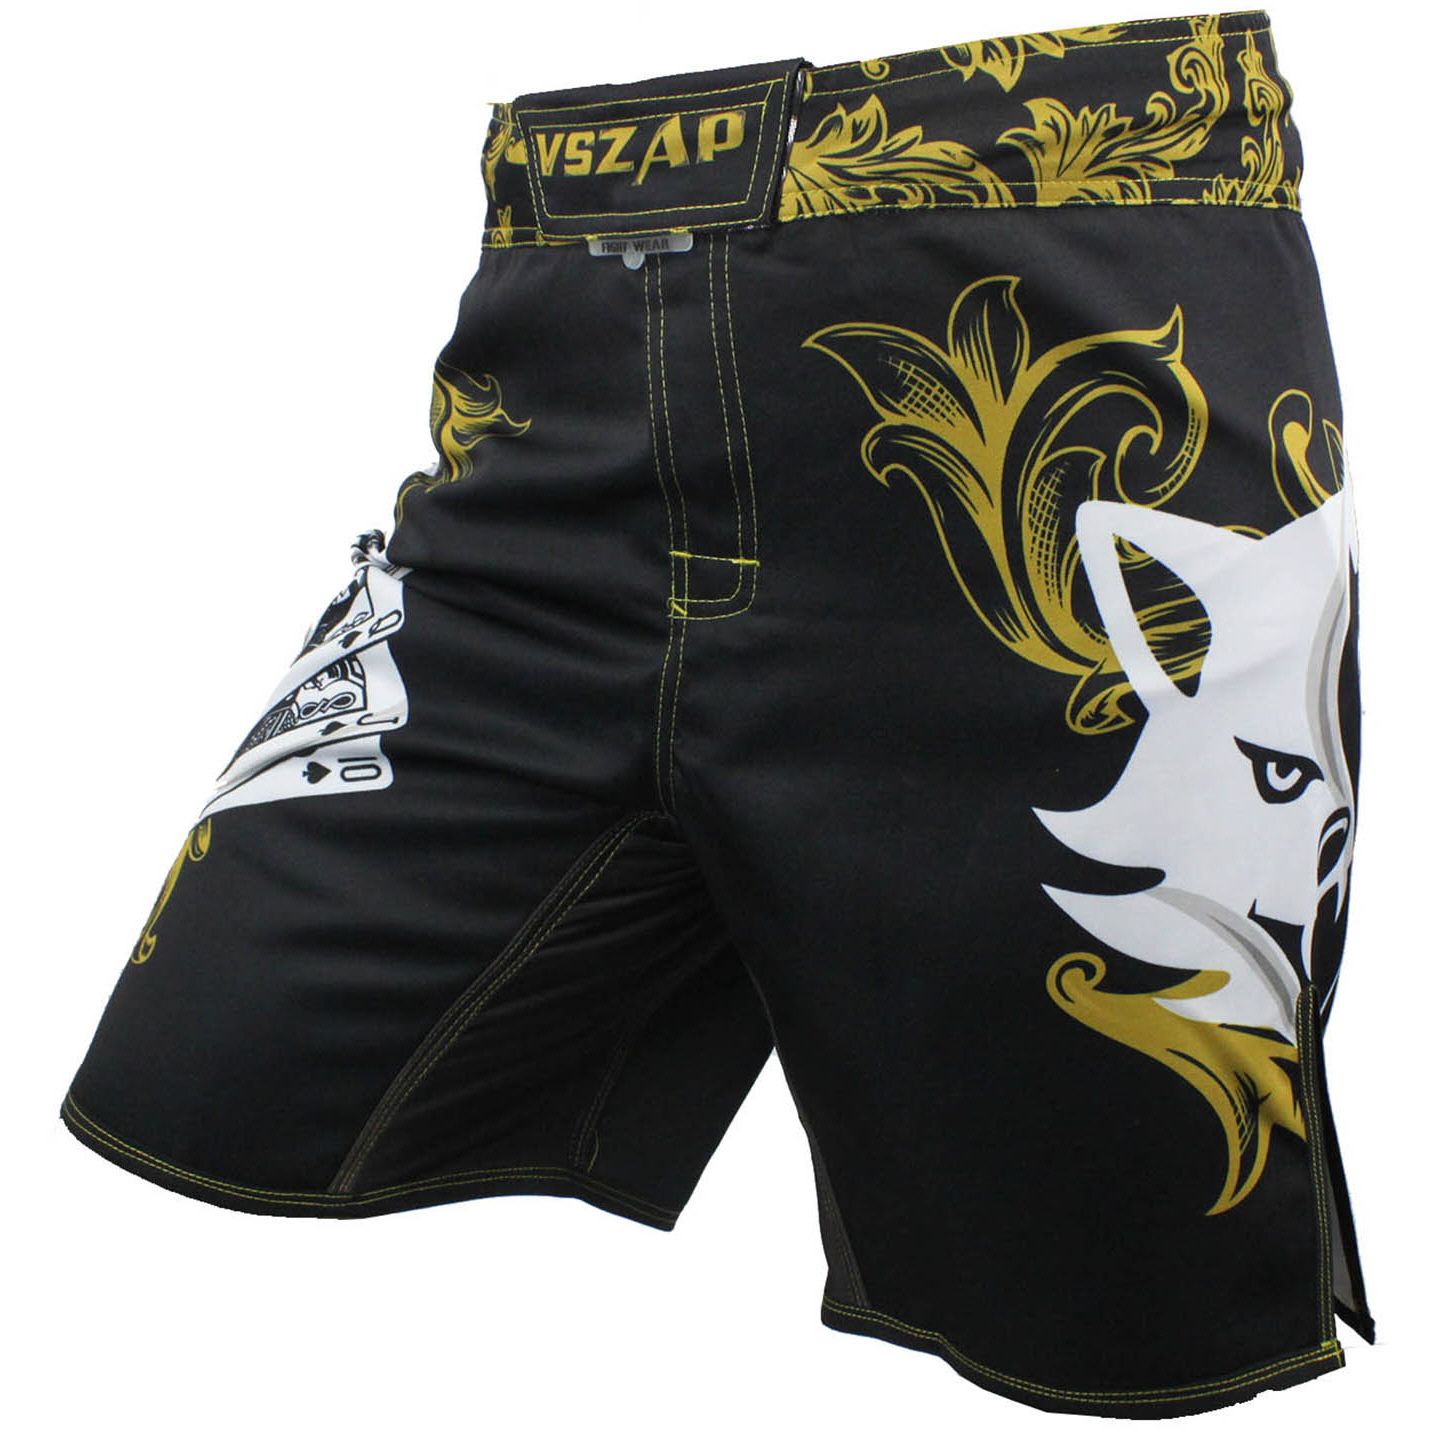 MMA Shorts Kick Muay Thai Shorts Men POKER VSZAP Poker Fighters Fighting Shorts Casual Mma Male Boxeo Kickboxing Stretch Crotch